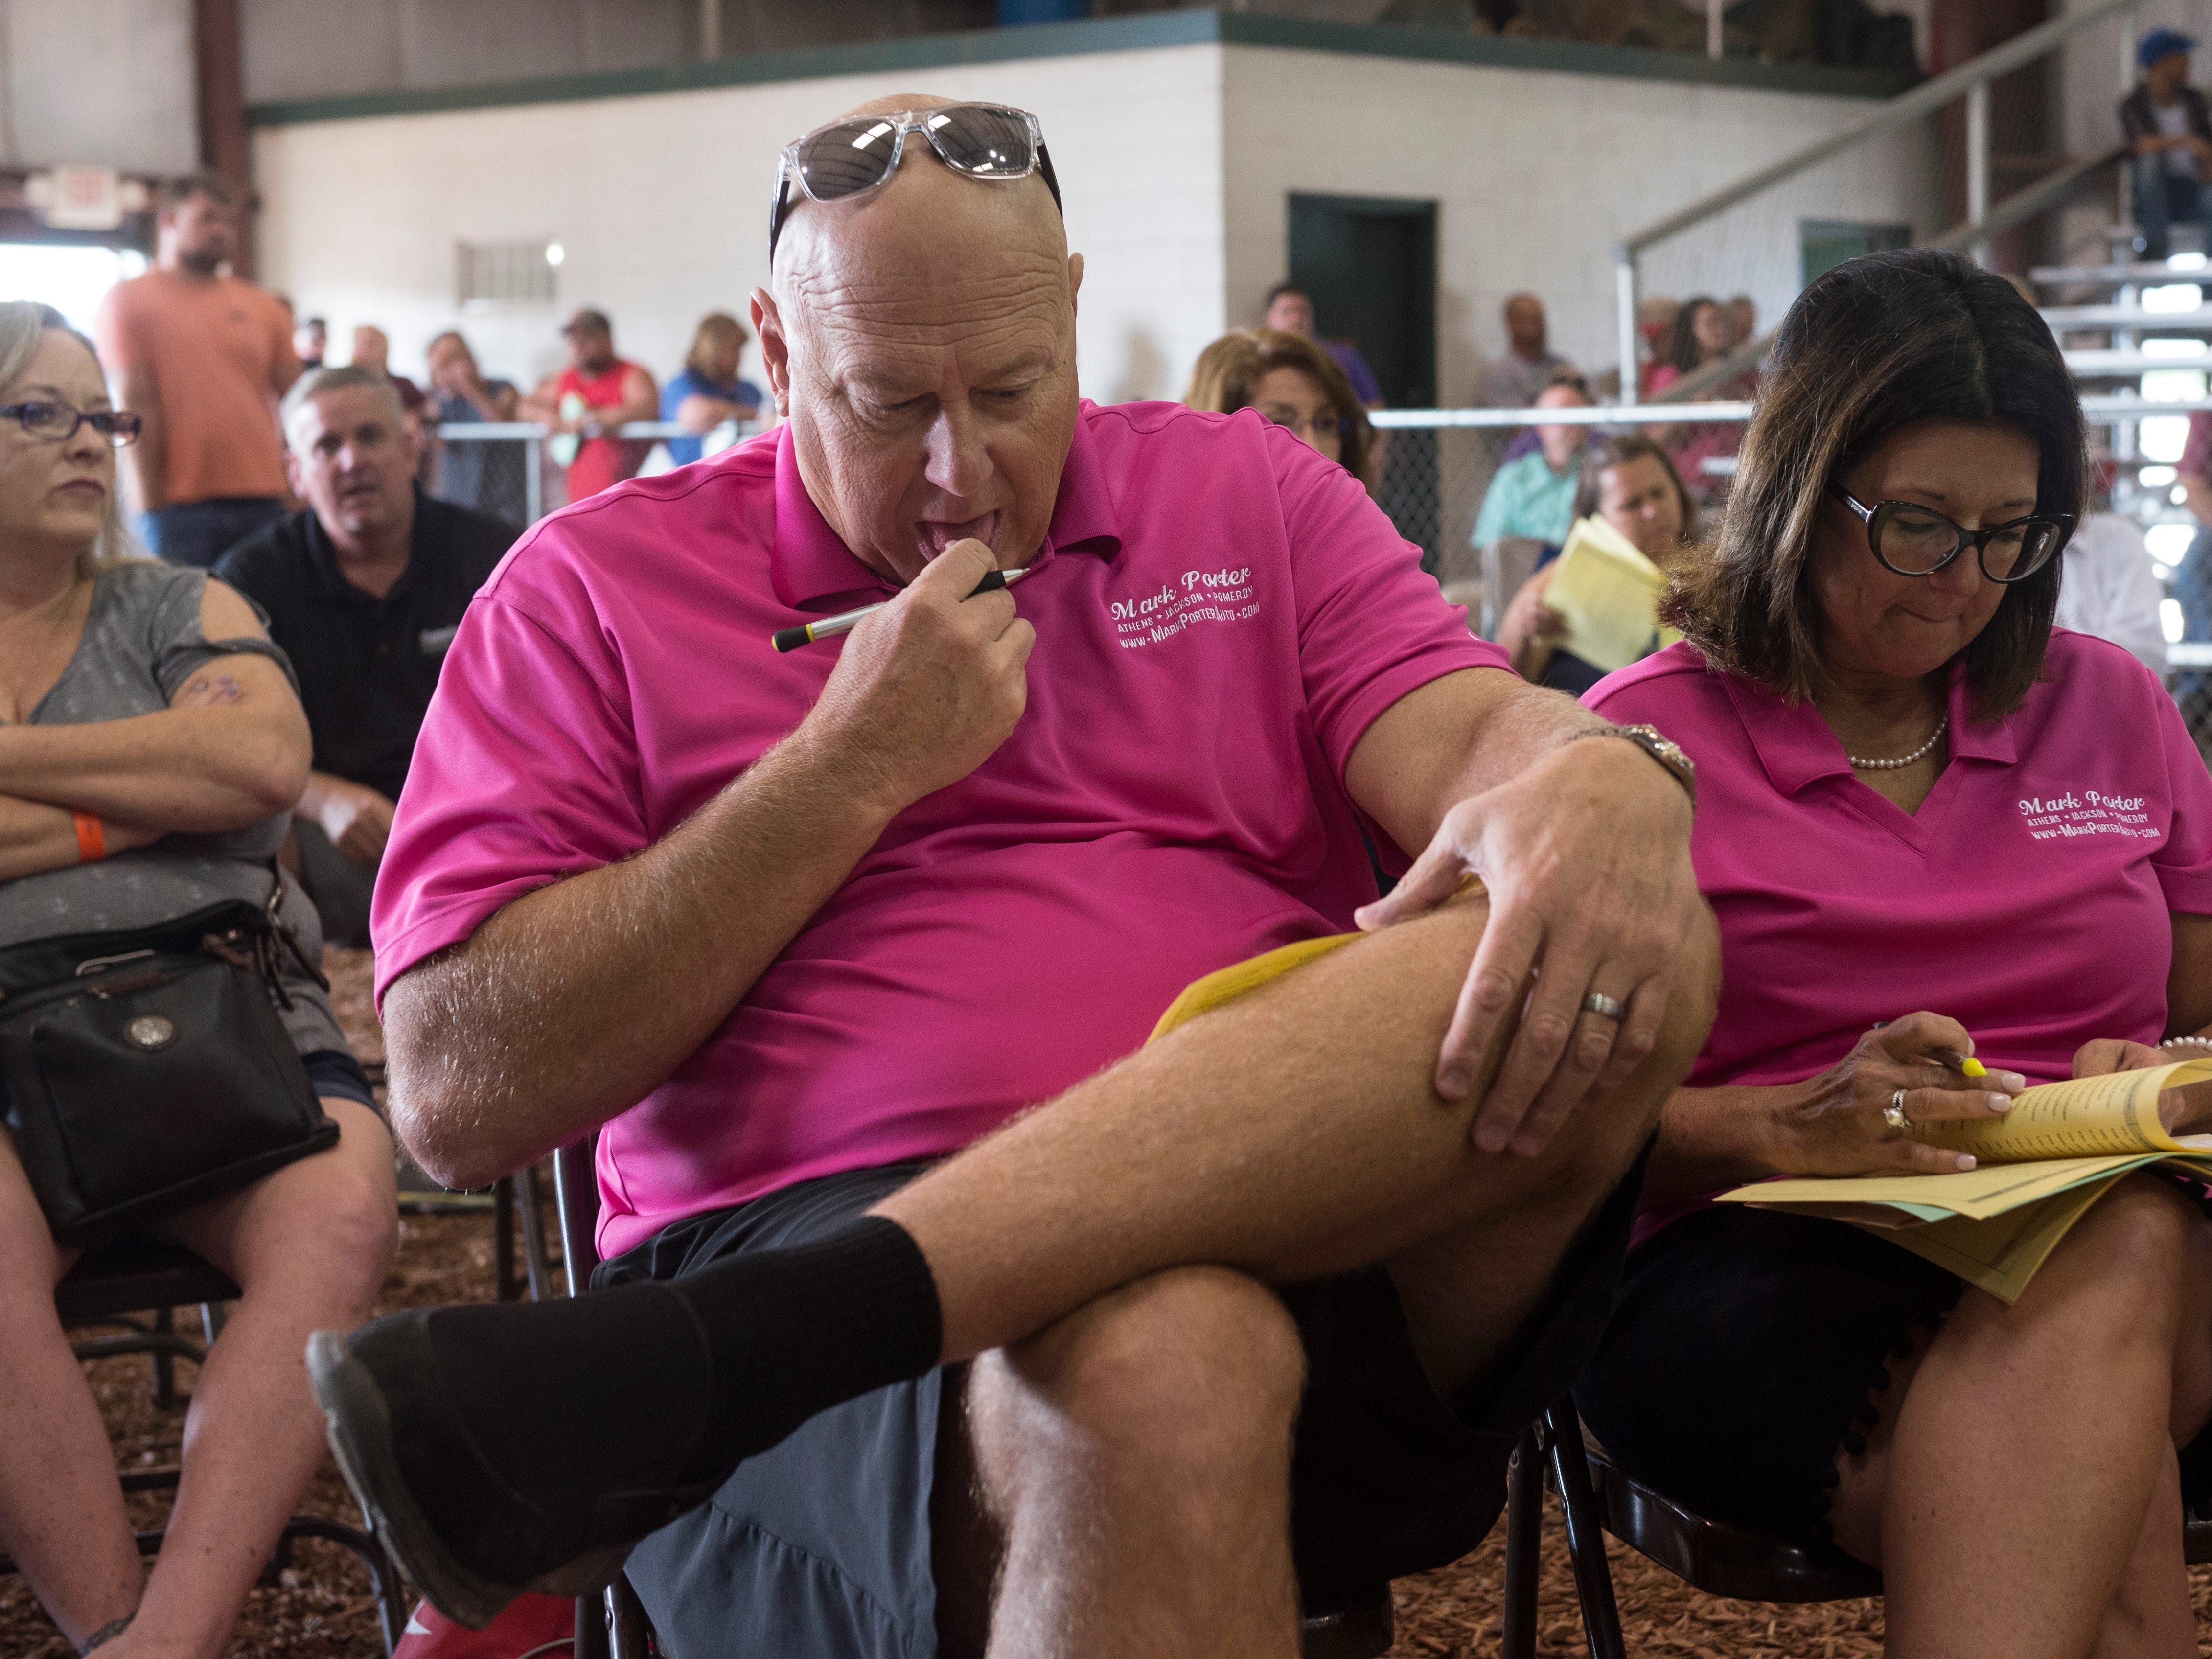 Fair attendees bid on steer during the Jr. Fair Market Steer, Poultry and Rabbit Sale at the Ross County Fair on August 11, 2018, in Chillicothe, Ohio.